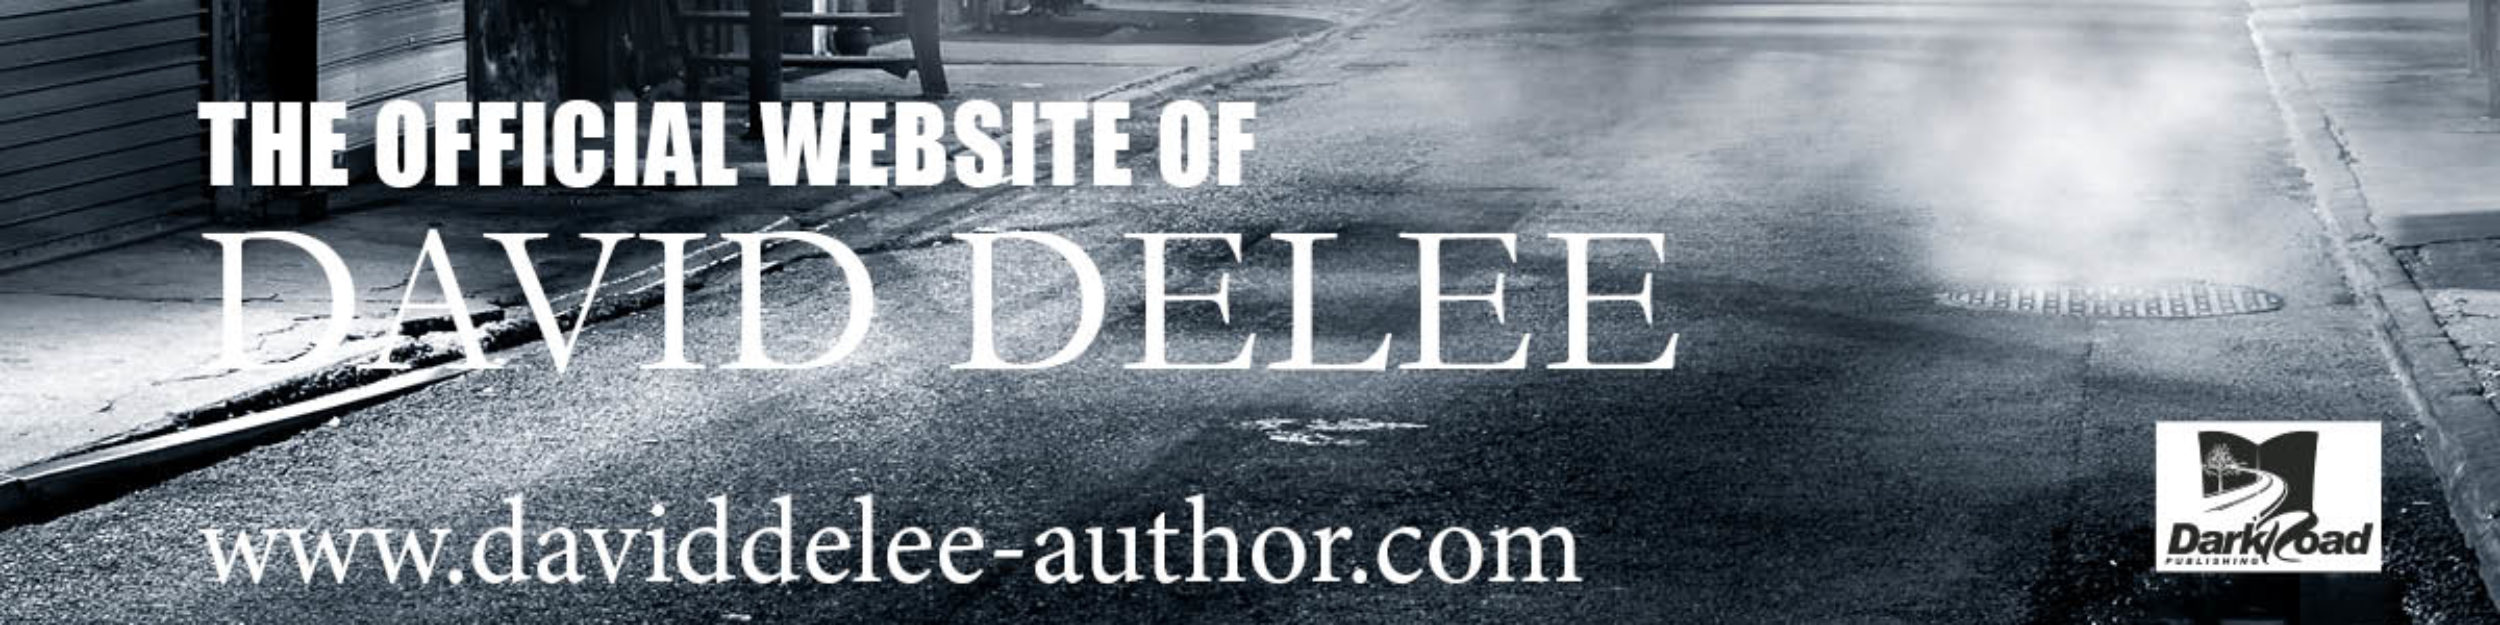 DAVID DELEE-AUTHOR.COM